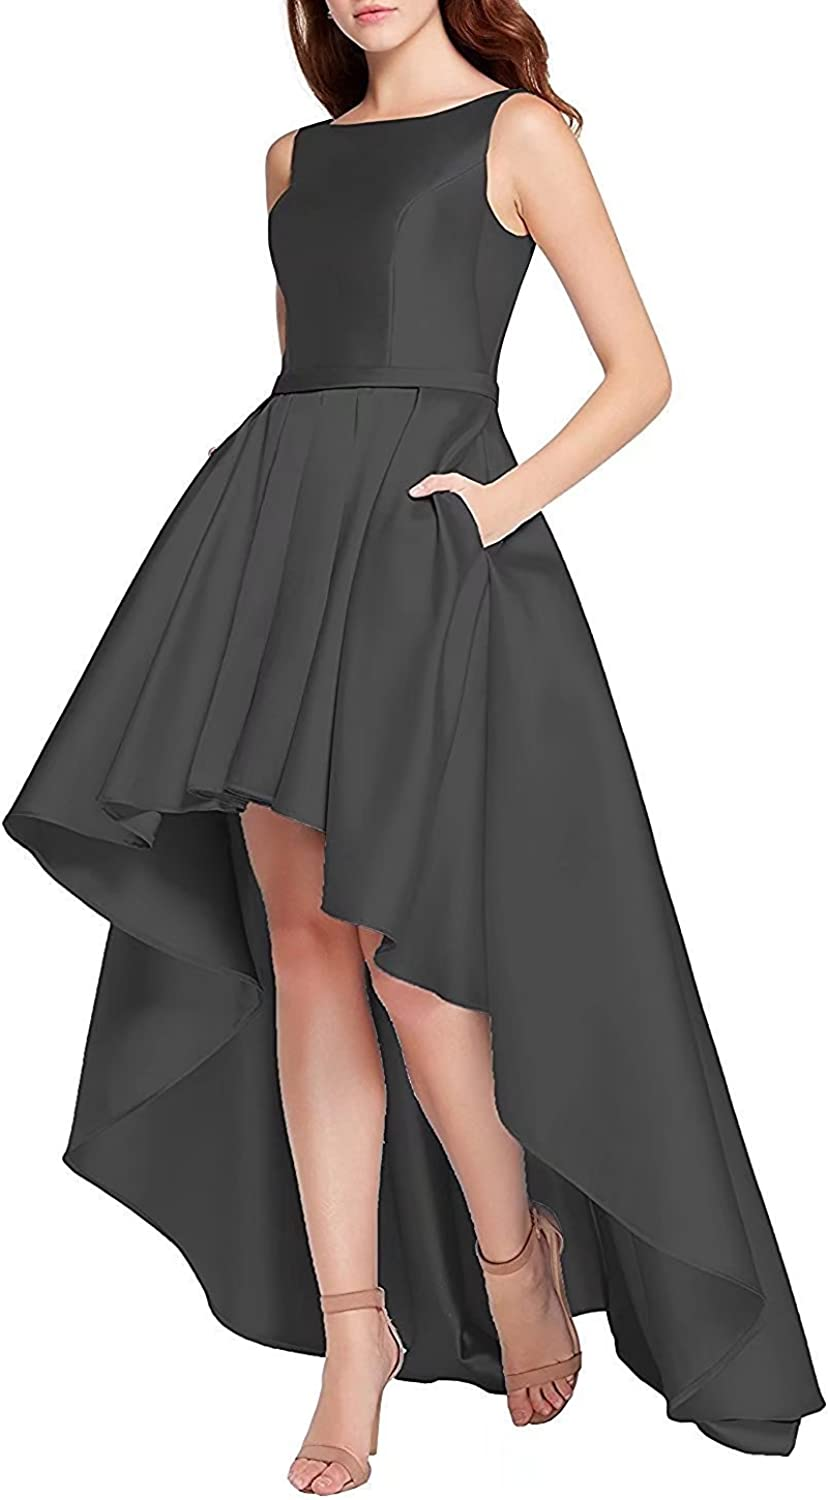 High Low Homecoming Prom Dresses 2018 Satin ALine Evening Formal Party Ball Gown